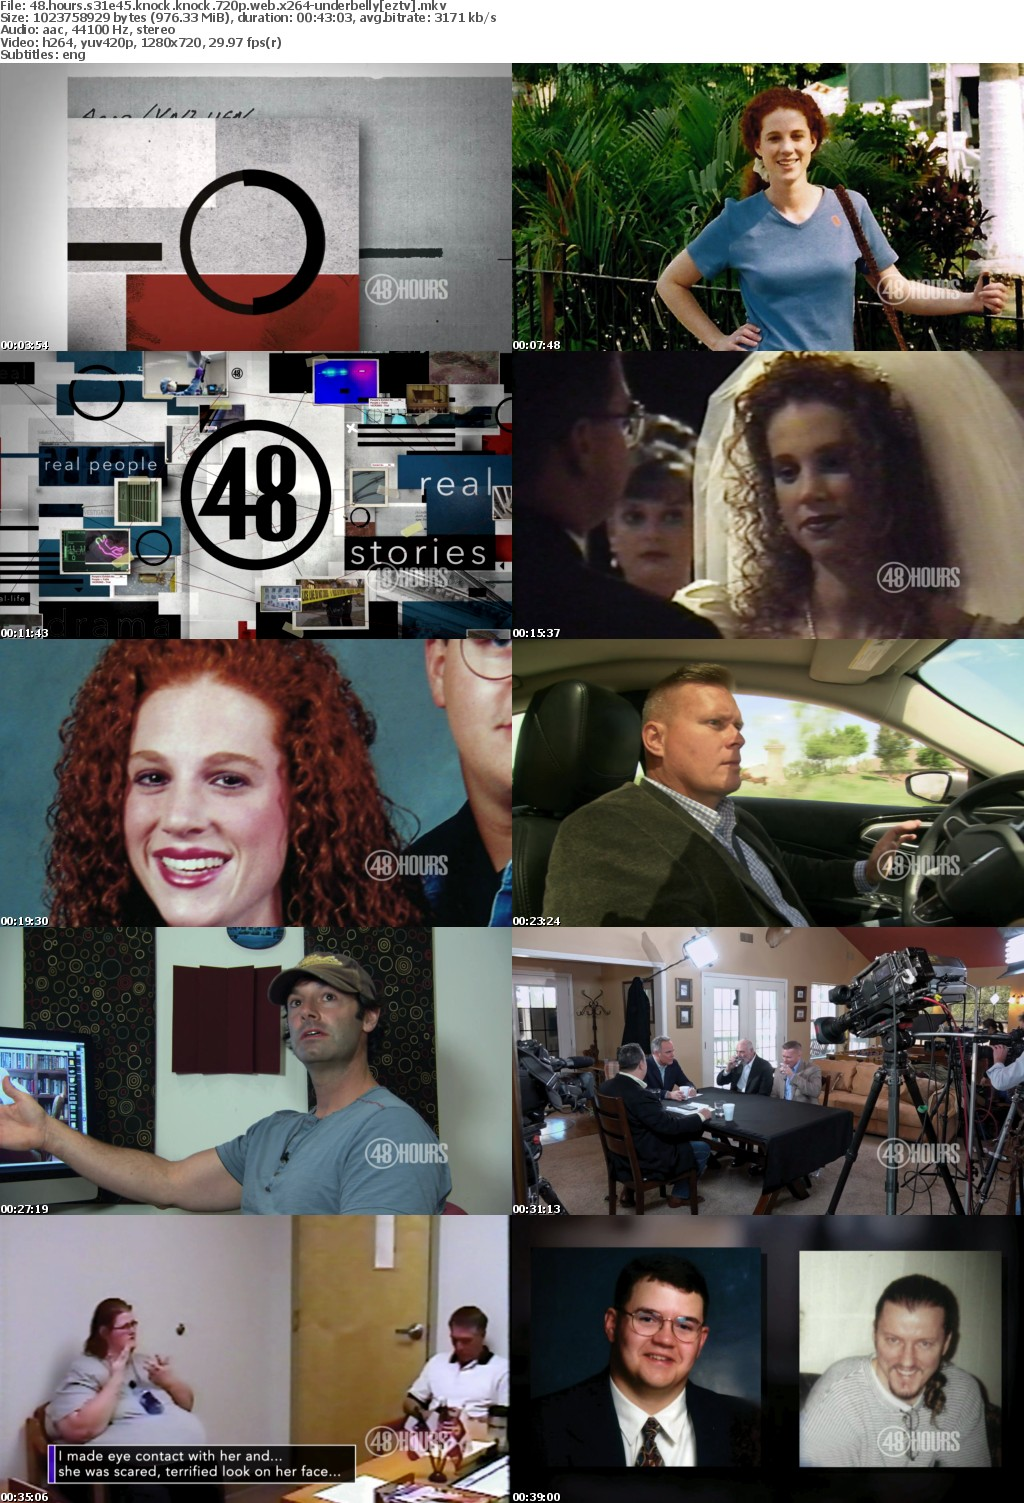 48 Hours S31E45 Knock Knock 720p WEB x264 UNDERBELLY